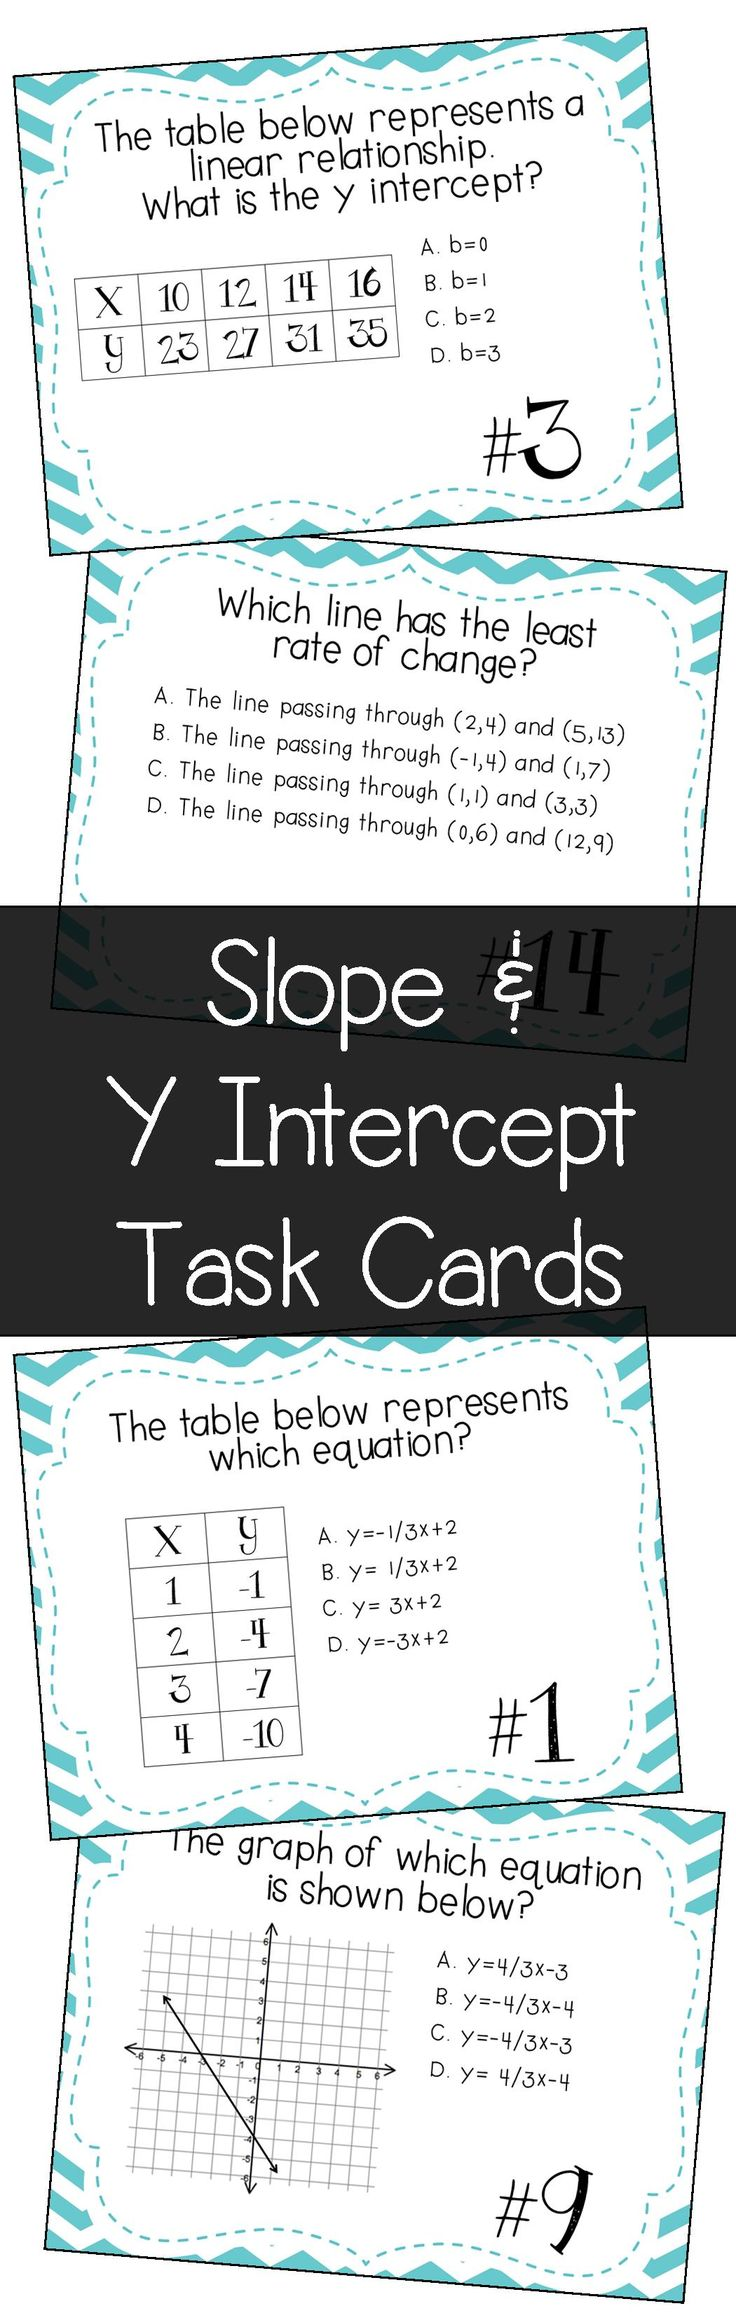 These task cards would be perfect for my 8th Grade Math & Algebra students!  I love how so many different skills are covered relating to Slope & Y-Intercept.  Determine slope and y intercept from graphs & tables.  Understand the difference between proportional and non-proportional graphs & tables.  Calculate slope when given two points.  Write a corresponding equation in y=mx+b form when given a graph or table